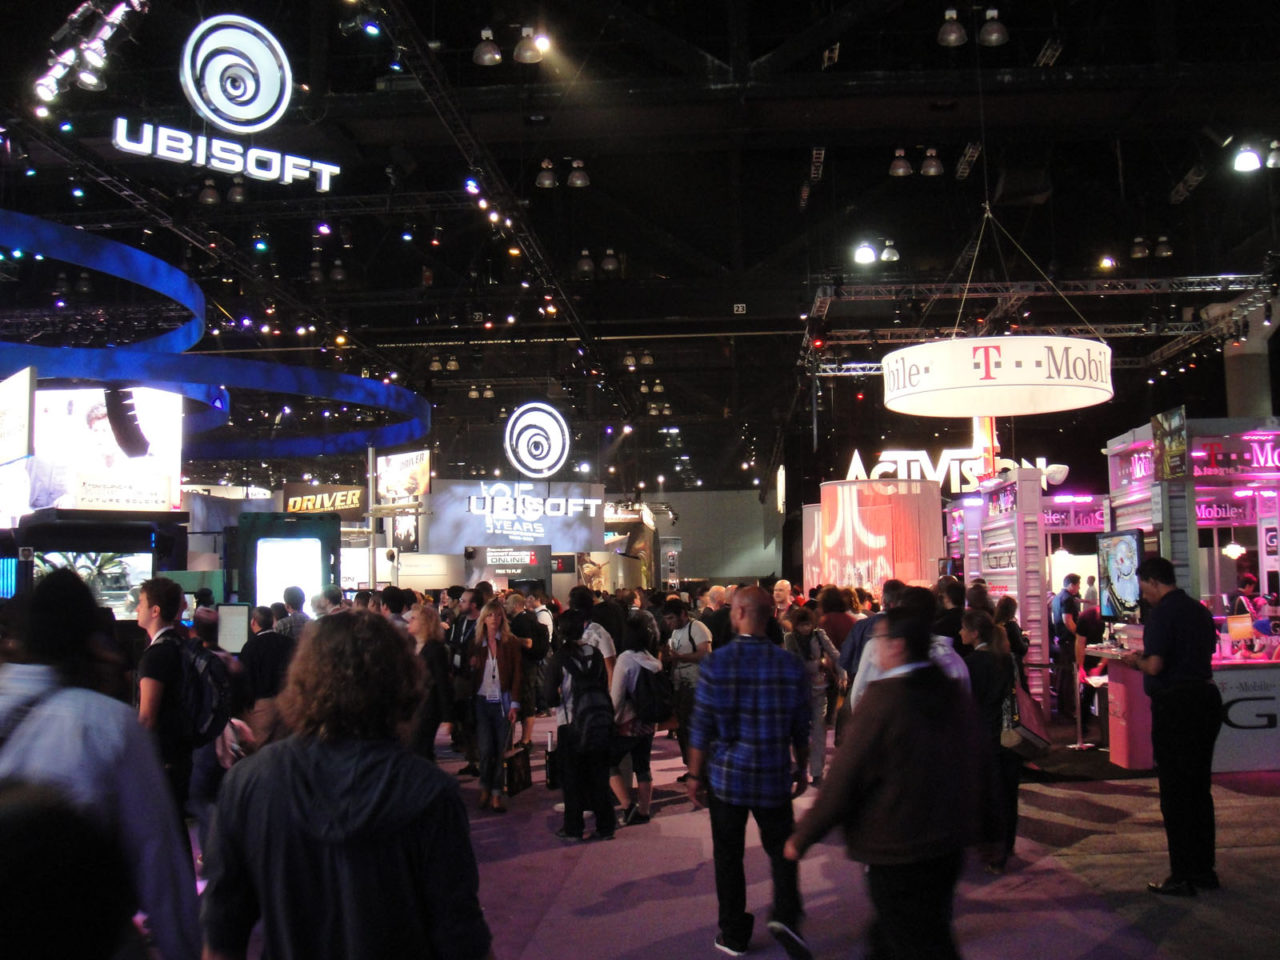 https://thesubmarine.it/wp-content/uploads/2016/06/E3_2011_-_the_South_Hall_floor_5831111978-1280x960.jpg